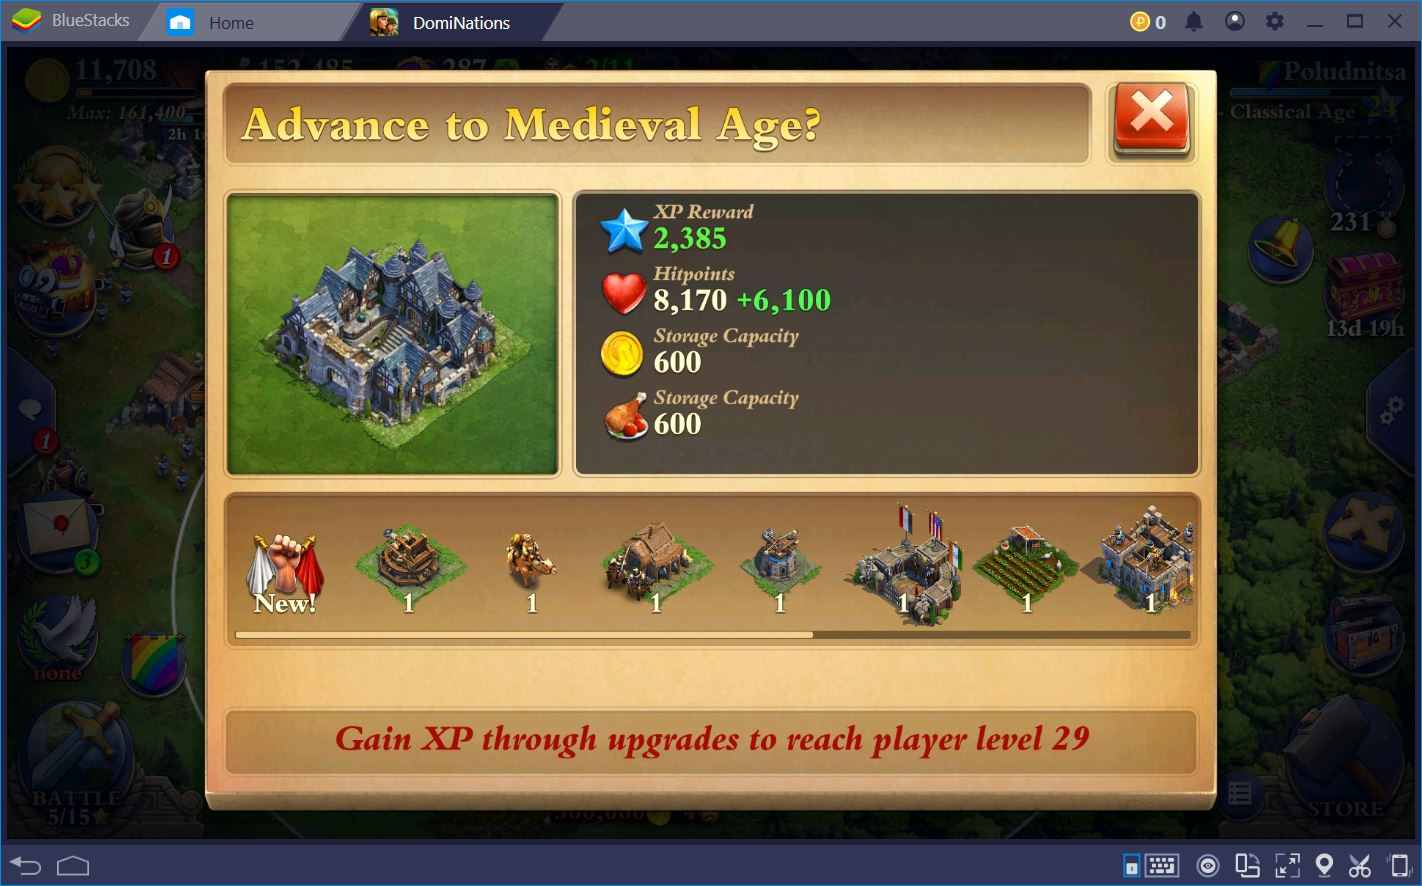 DomiNations: Guide to the Classical and Medieval Ages